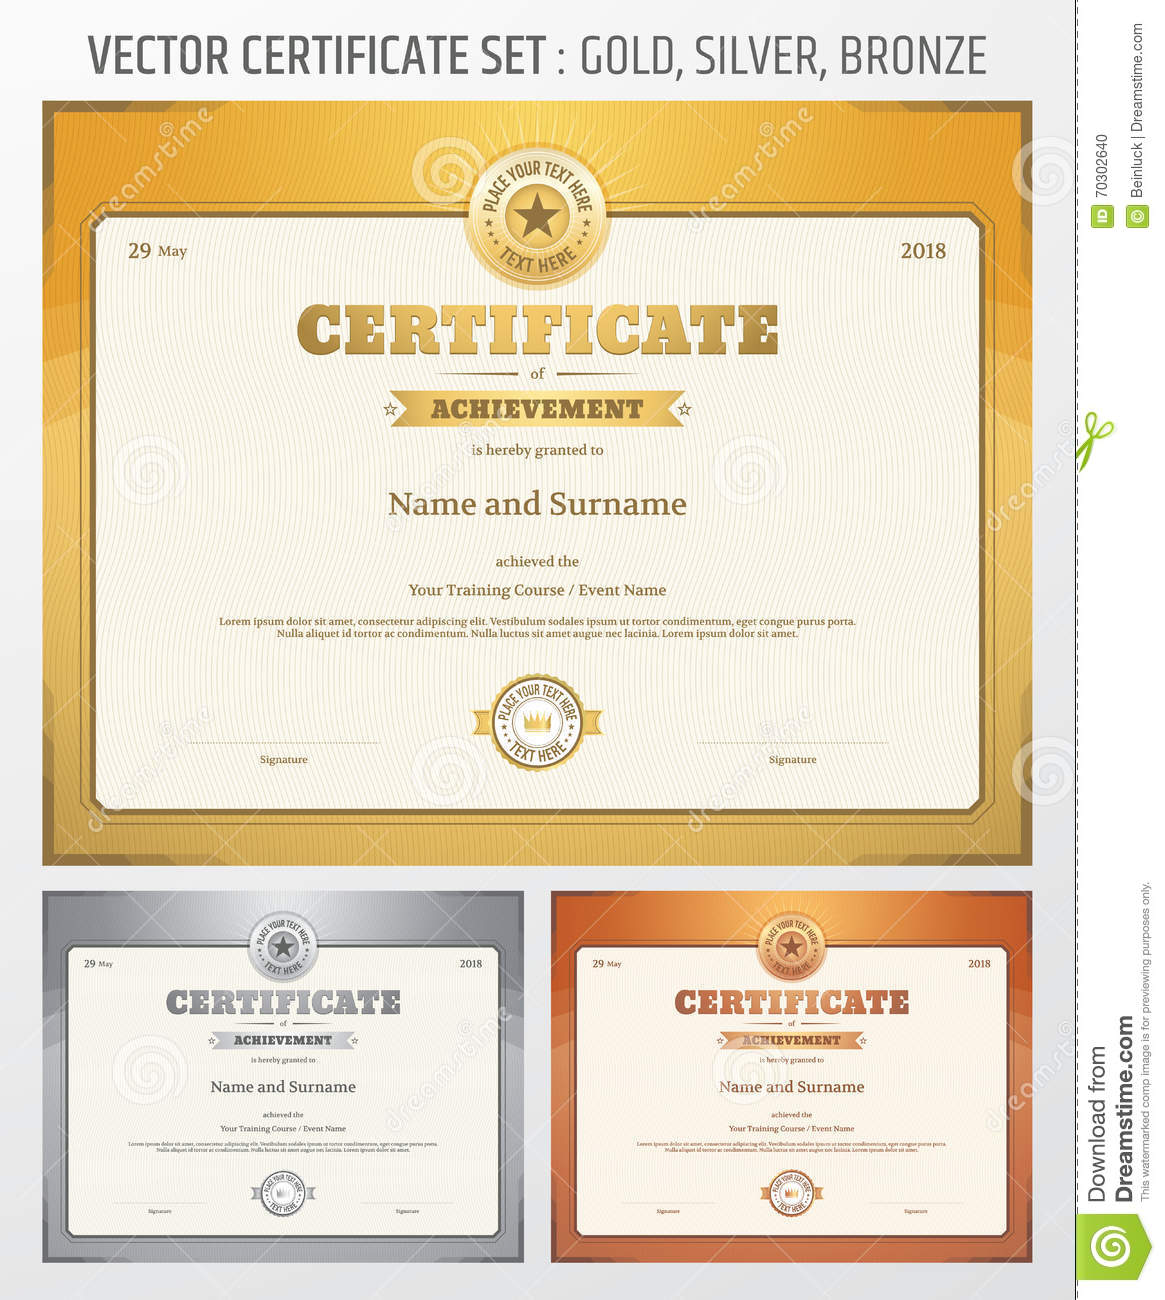 Certificate of achievement template in vector in gold silver and royalty free vector download certificate of achievement template yadclub Image collections